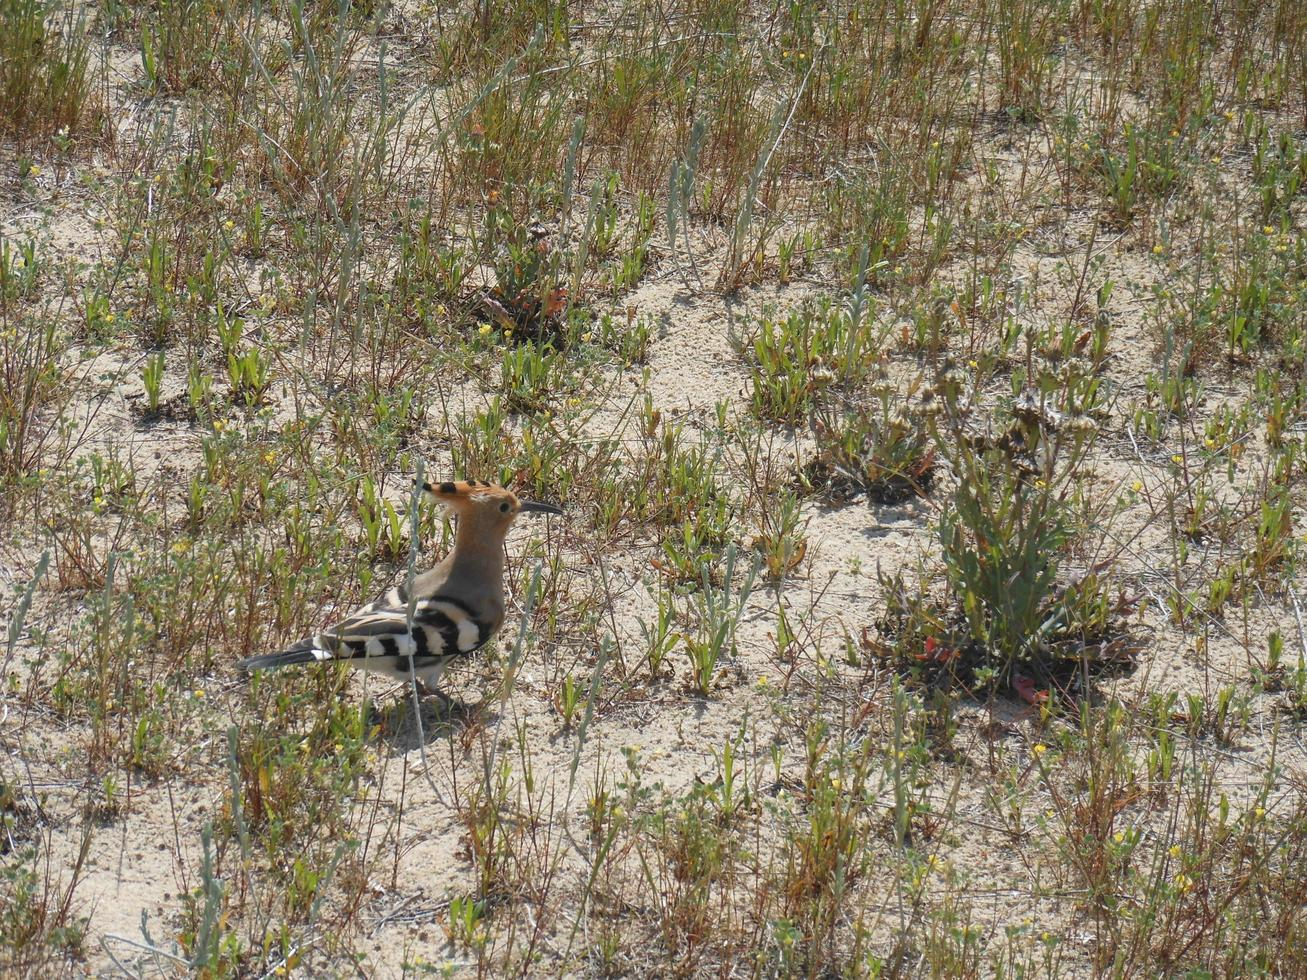 Small hoopoe walking on the sand of a beach photo